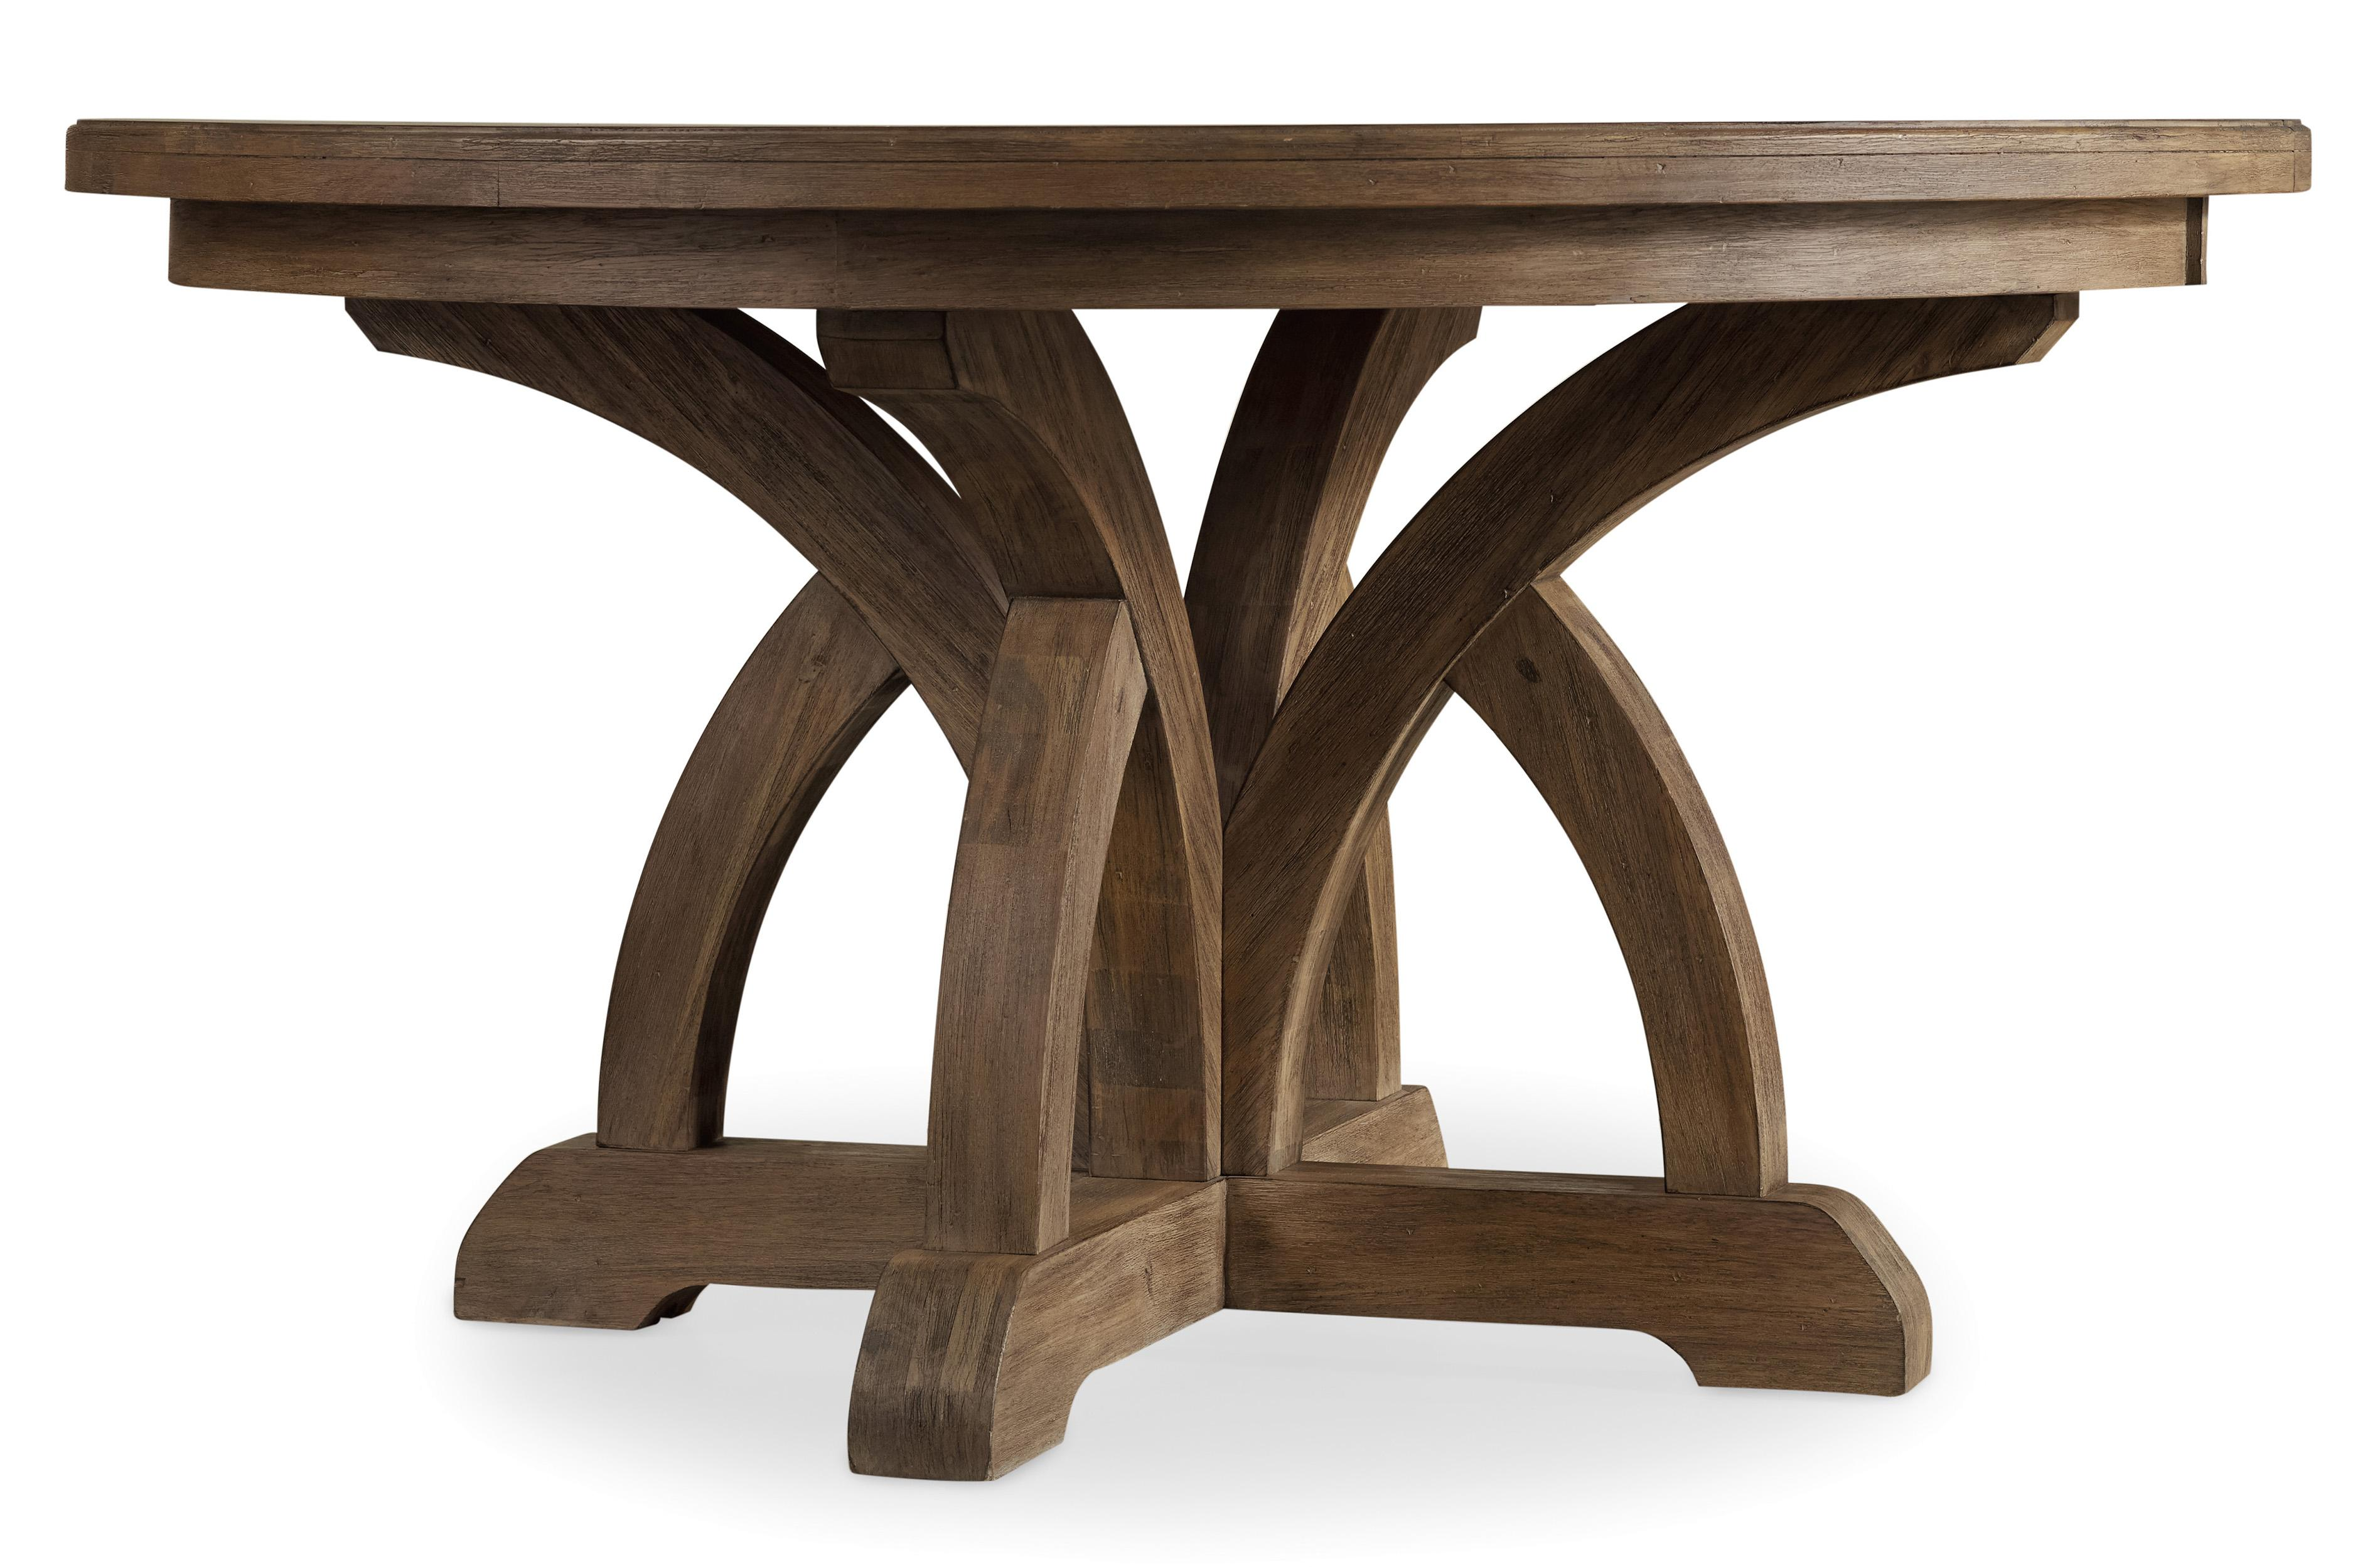 Hooker Furniture Corsica Round Dining Table - Item Number: 5180-75203